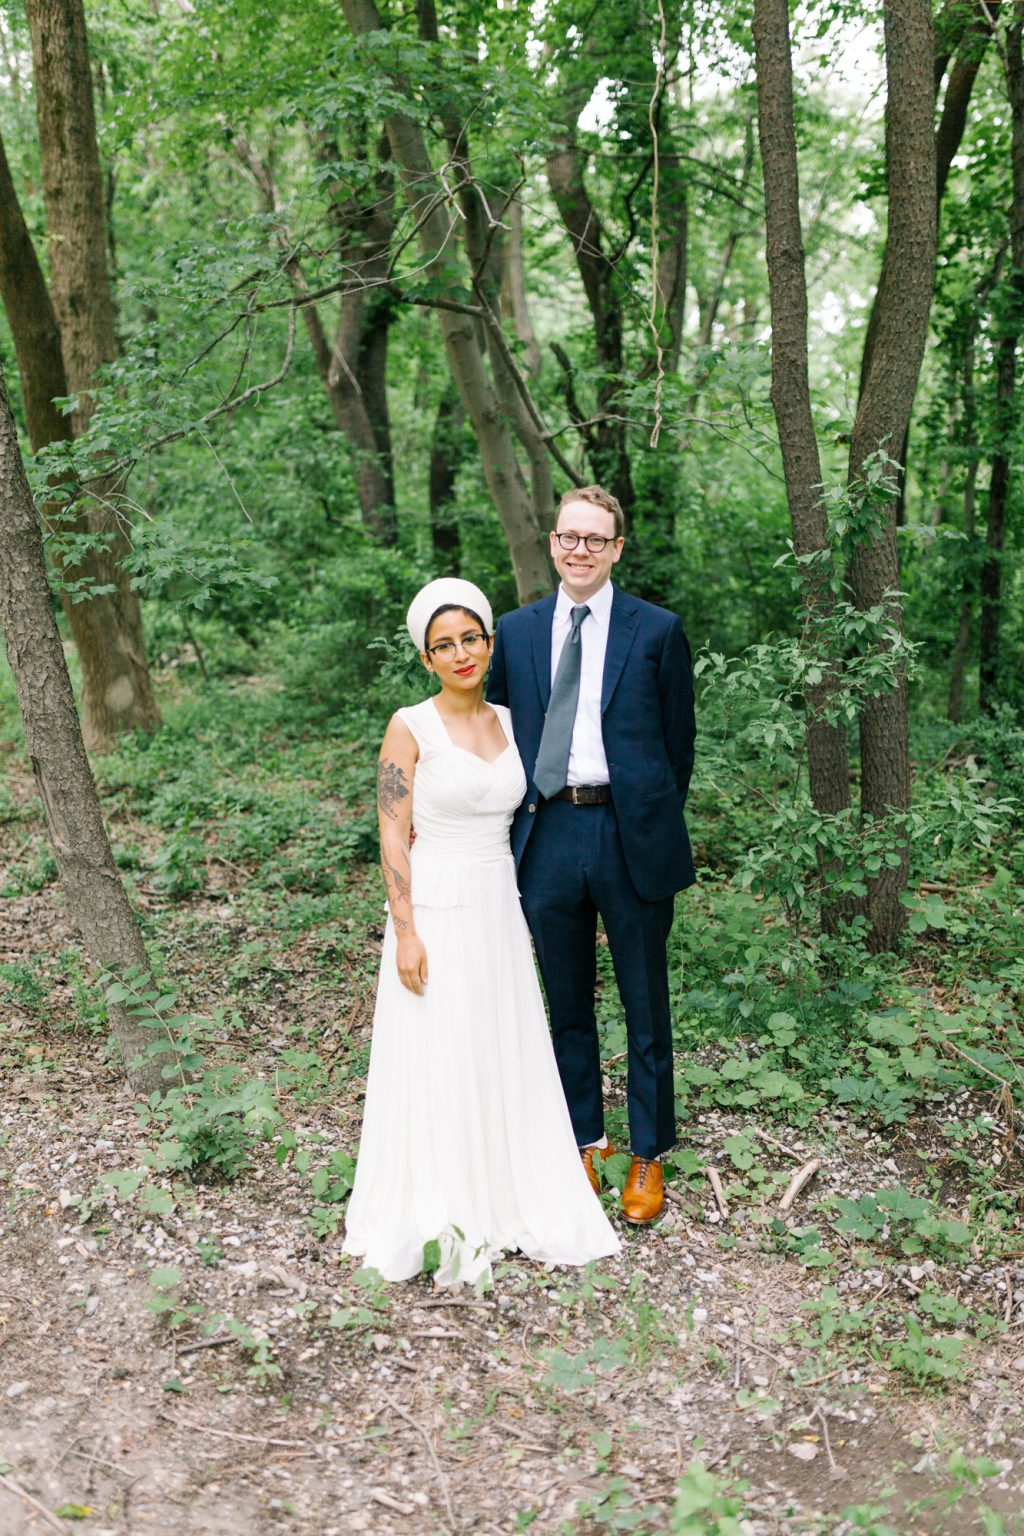 spring-Schuylkill-Wildlife-Center-wedding-haley-richter-photography-associate-keristin-gaber--047